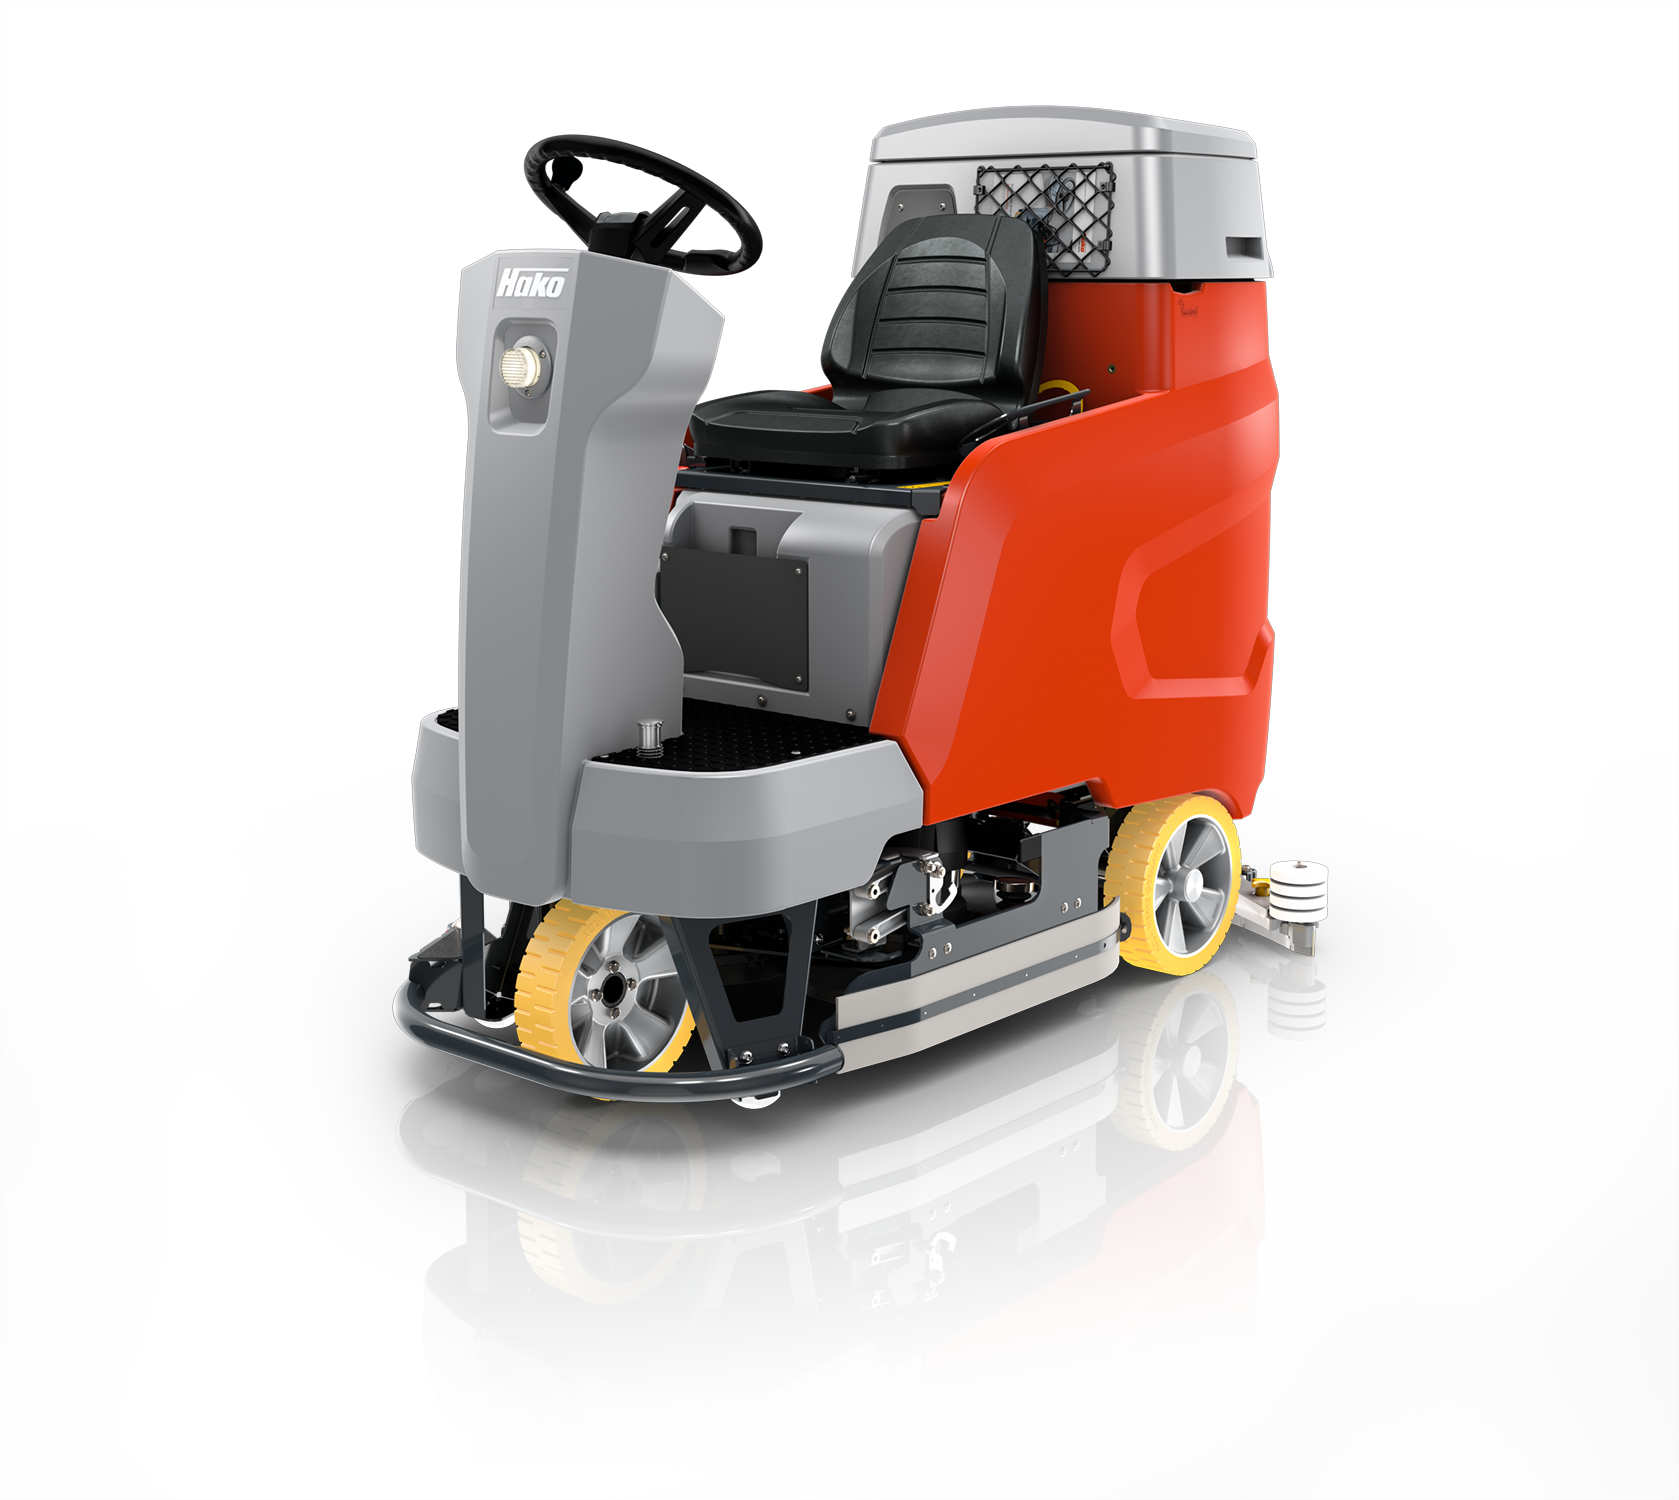 Scrubmaster B120 R Industrial Ride-on Floor Scrubber